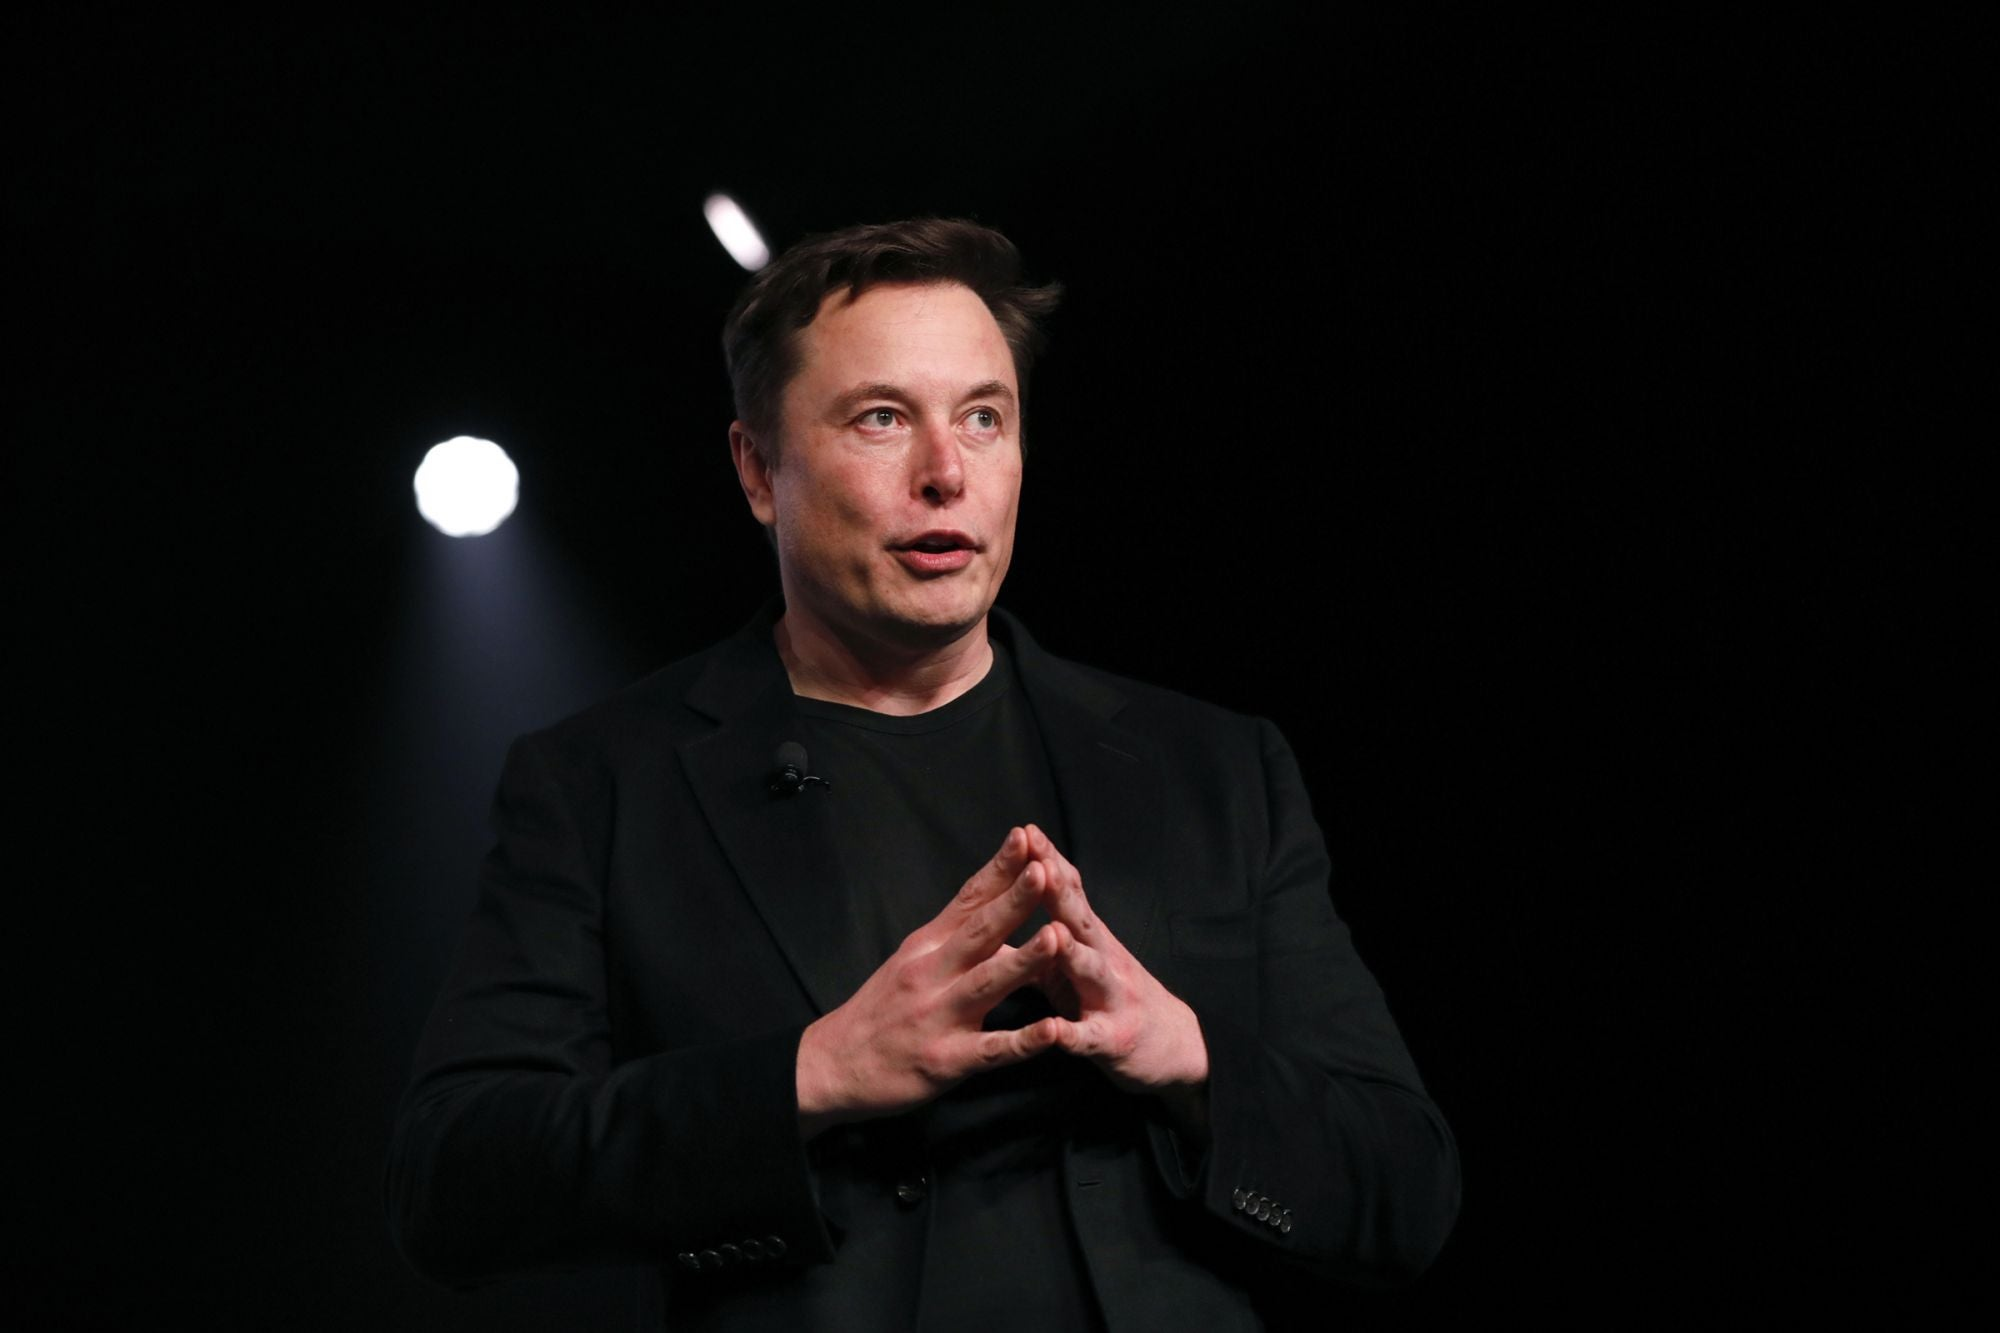 Tesla Stock Up as Elon Musk Announces Plans to Raise $2 Billion